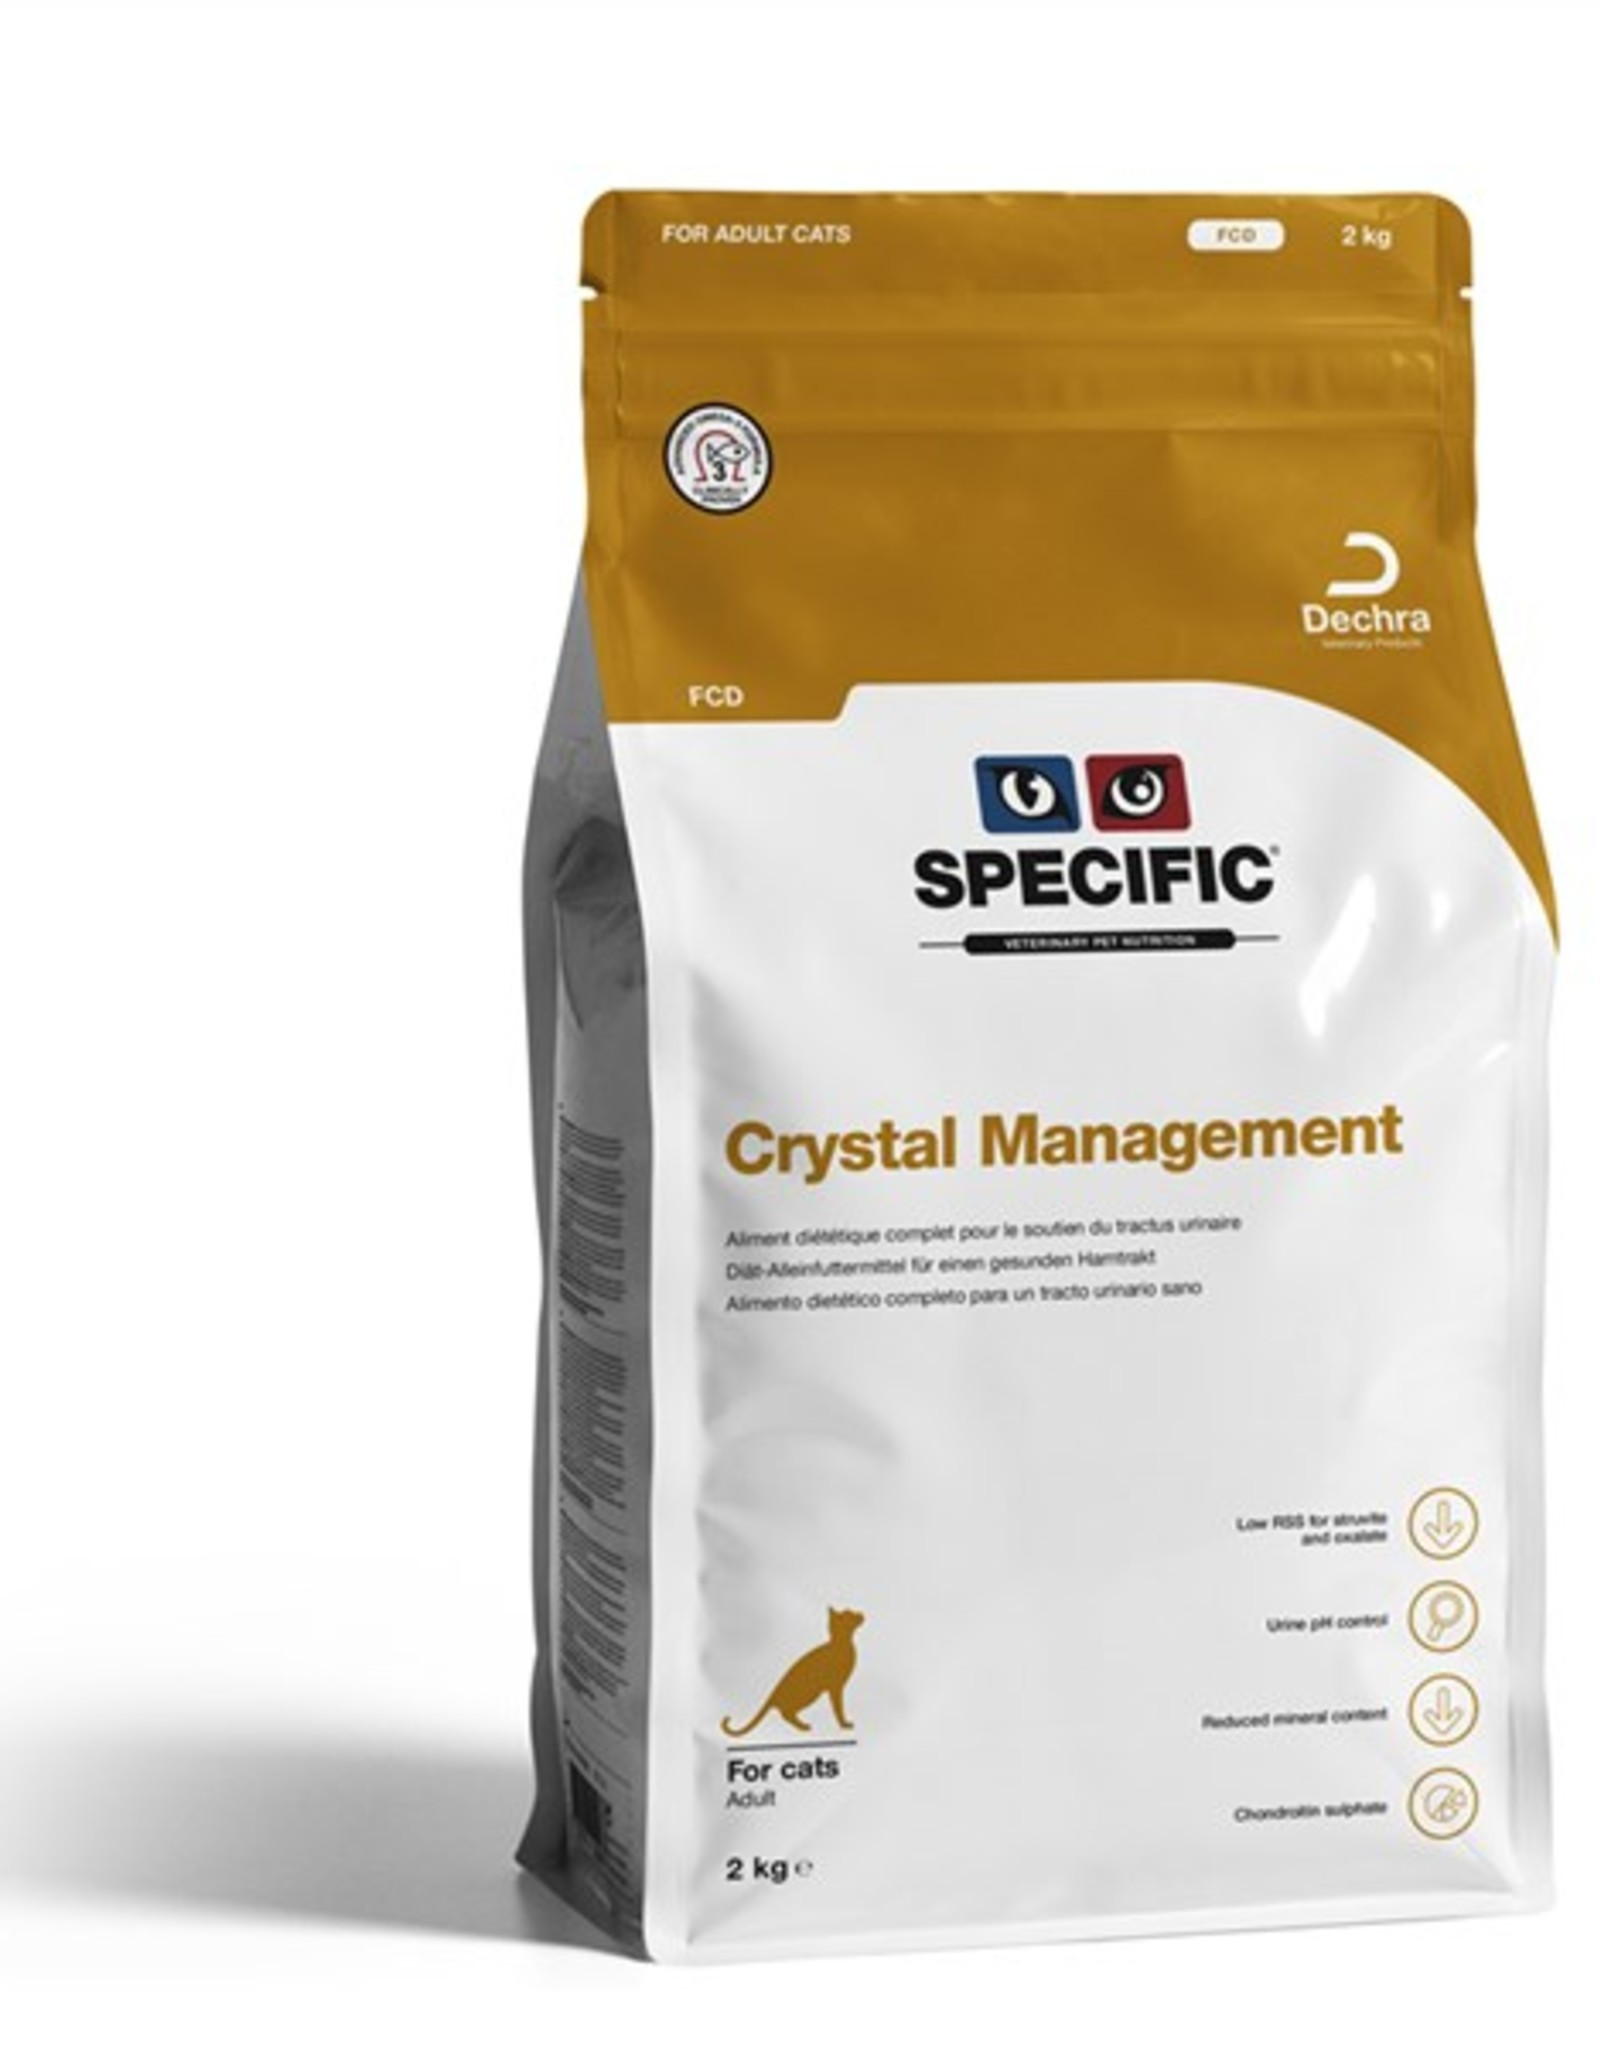 Specific Specific Fcd Crystal Management Cat 2kg